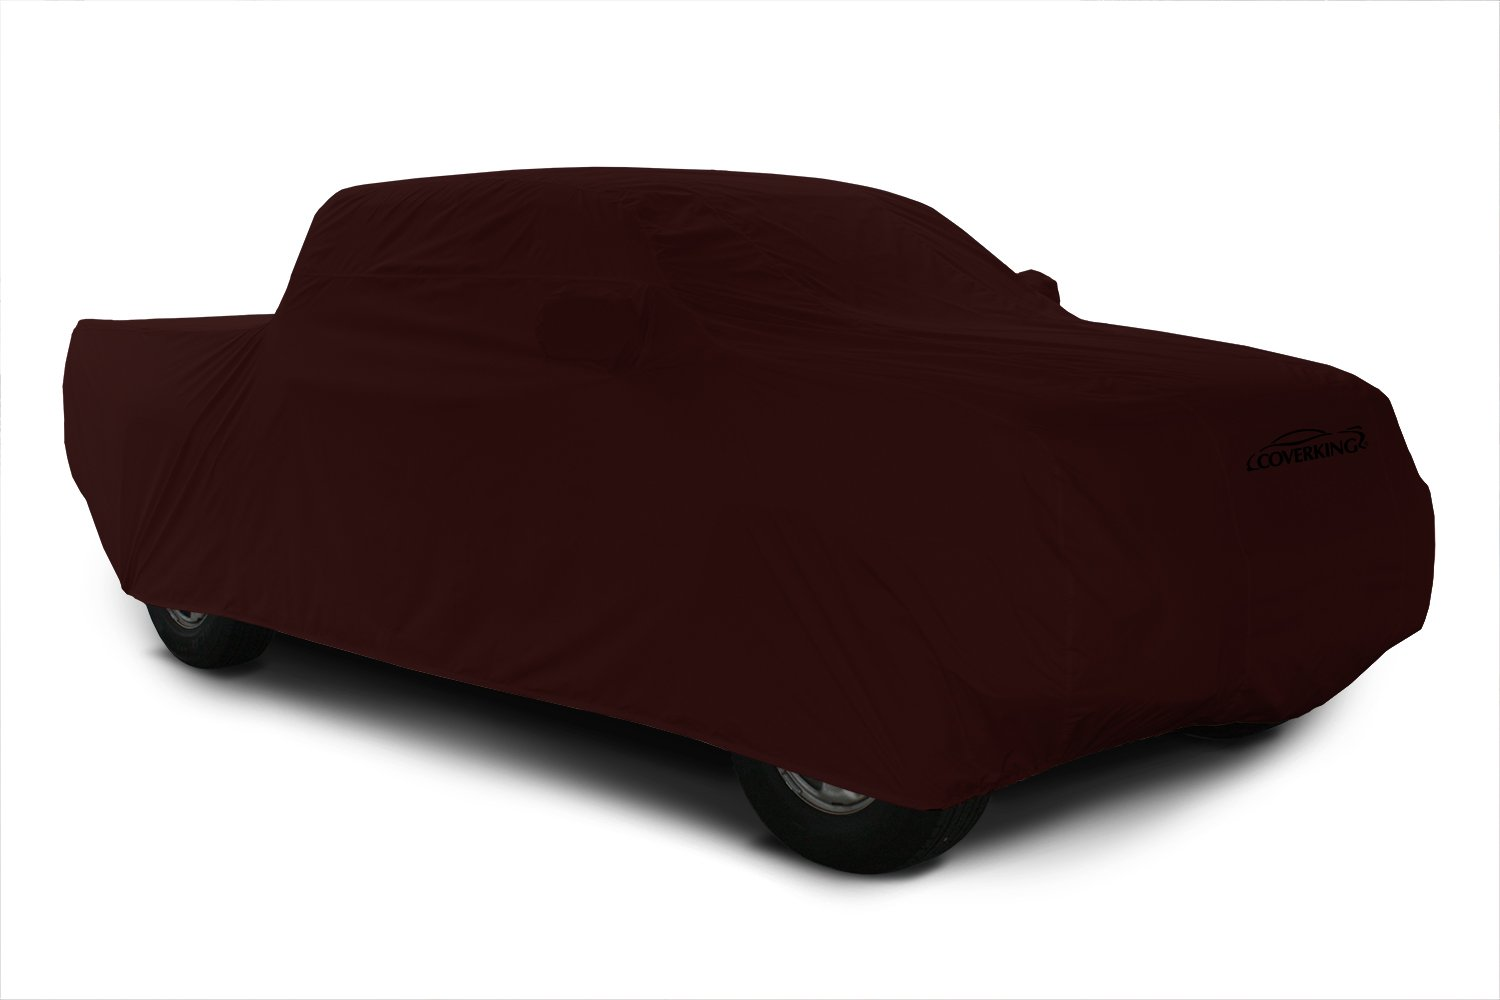 Coverking Custom Fit Car Cover for Select Chevrolet Silverado 2500 HD Models - Stormproof (White)